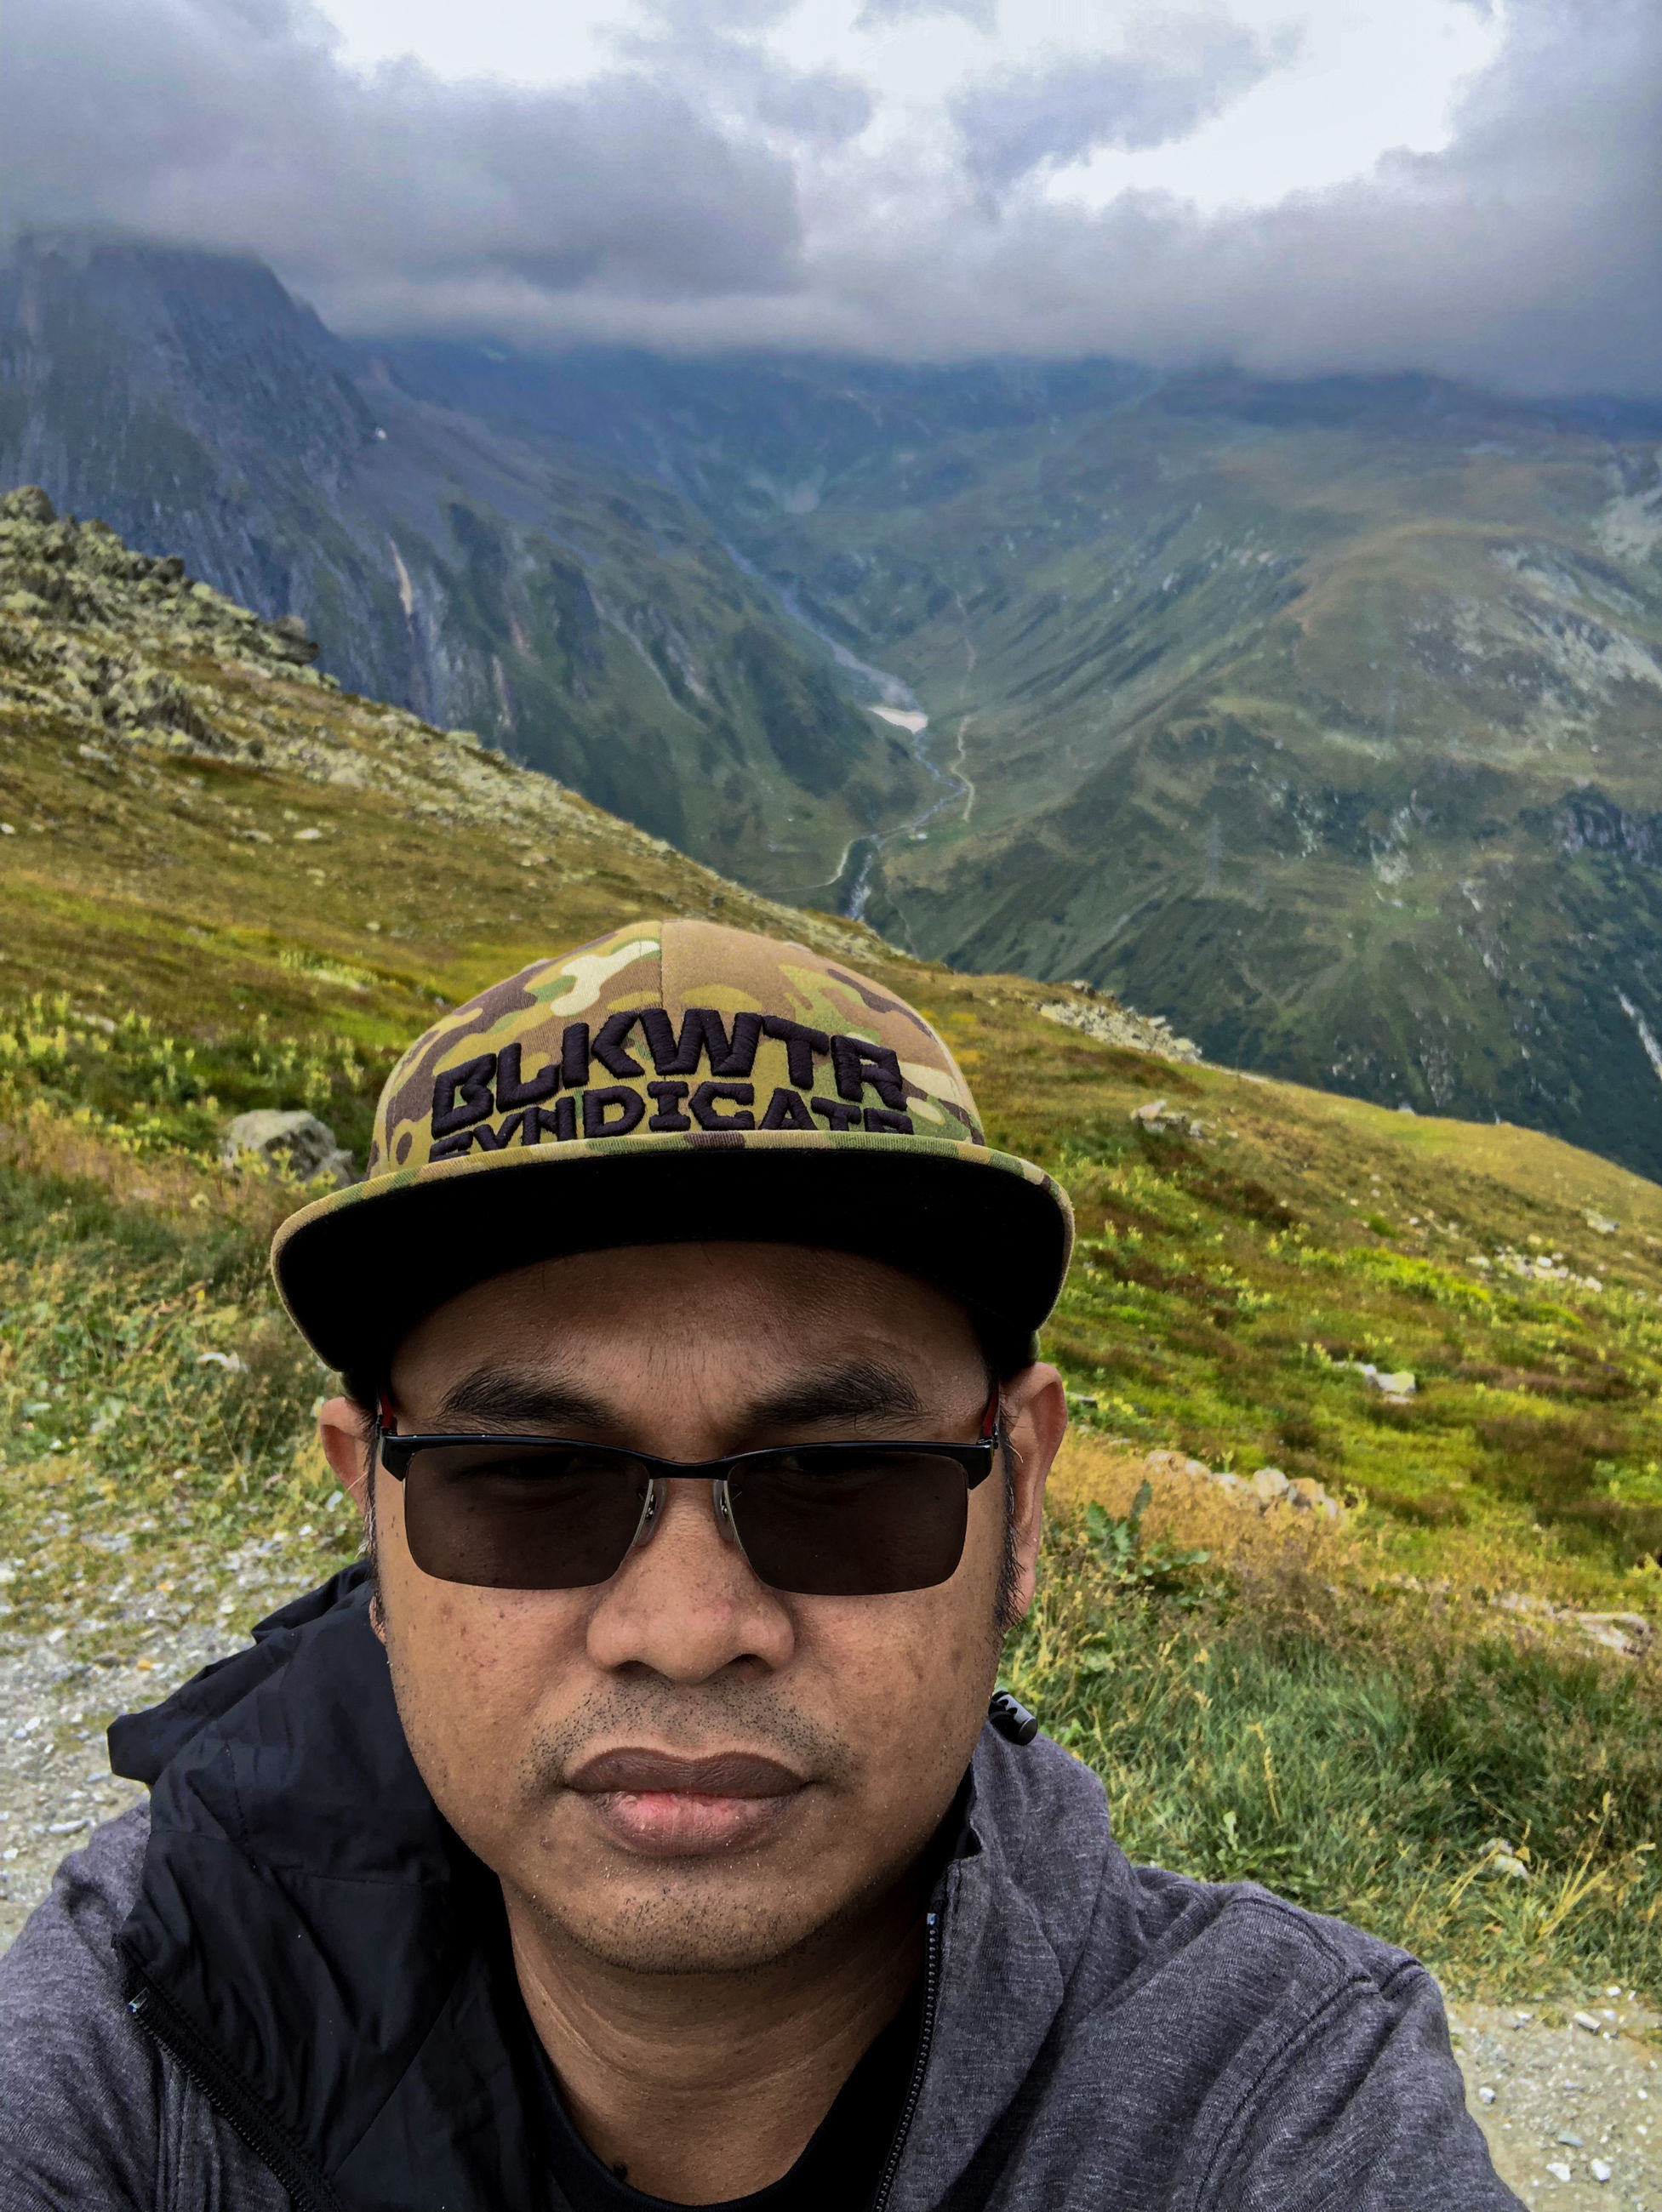 portrait, real people, glasses, one person, mountain, leisure activity, headshot, lifestyles, looking at camera, fashion, non-urban scene, nature, scenics - nature, day, men, front view, sunglasses, beauty in nature, young men, mountain range, outdoors